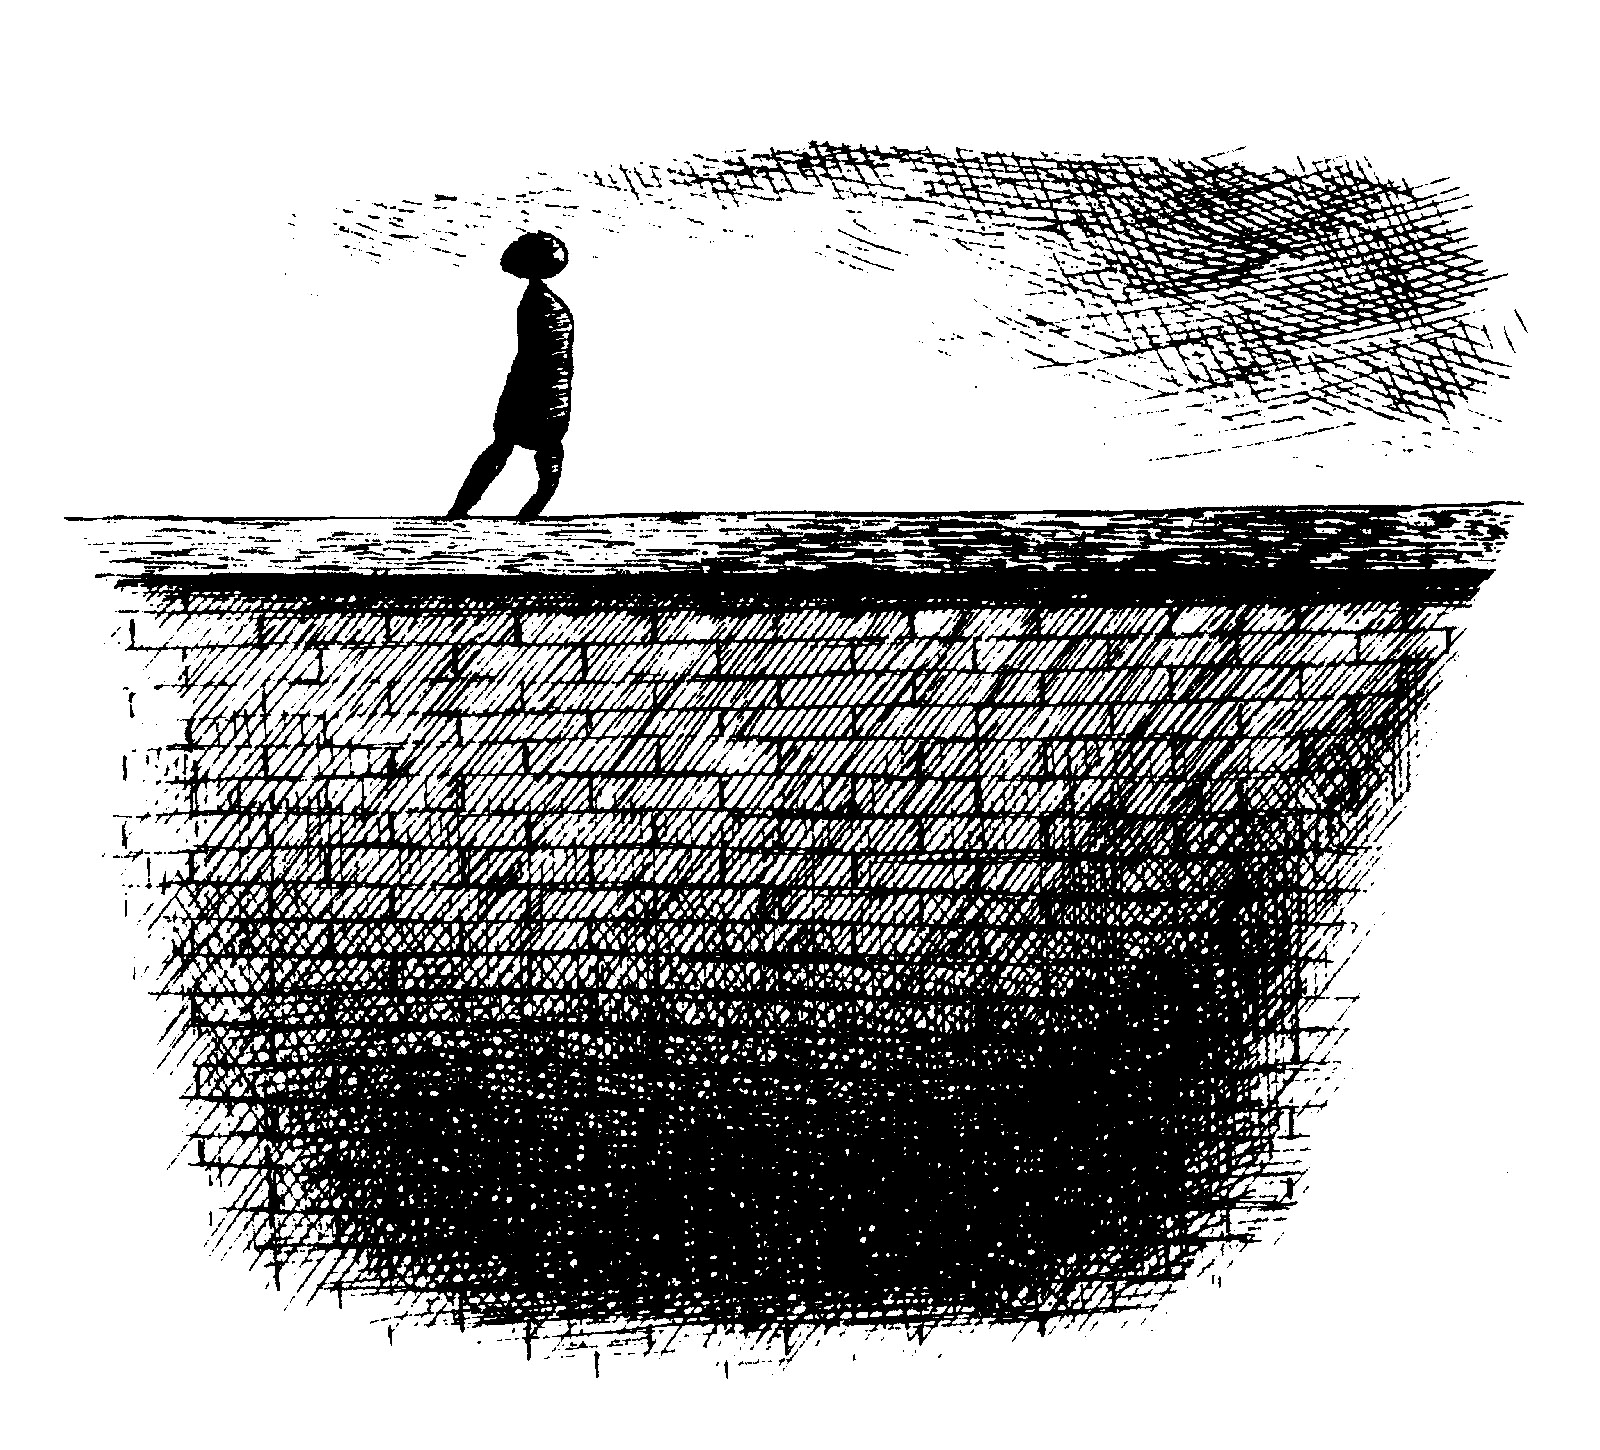 Drawing of a figure walking on top of a wall